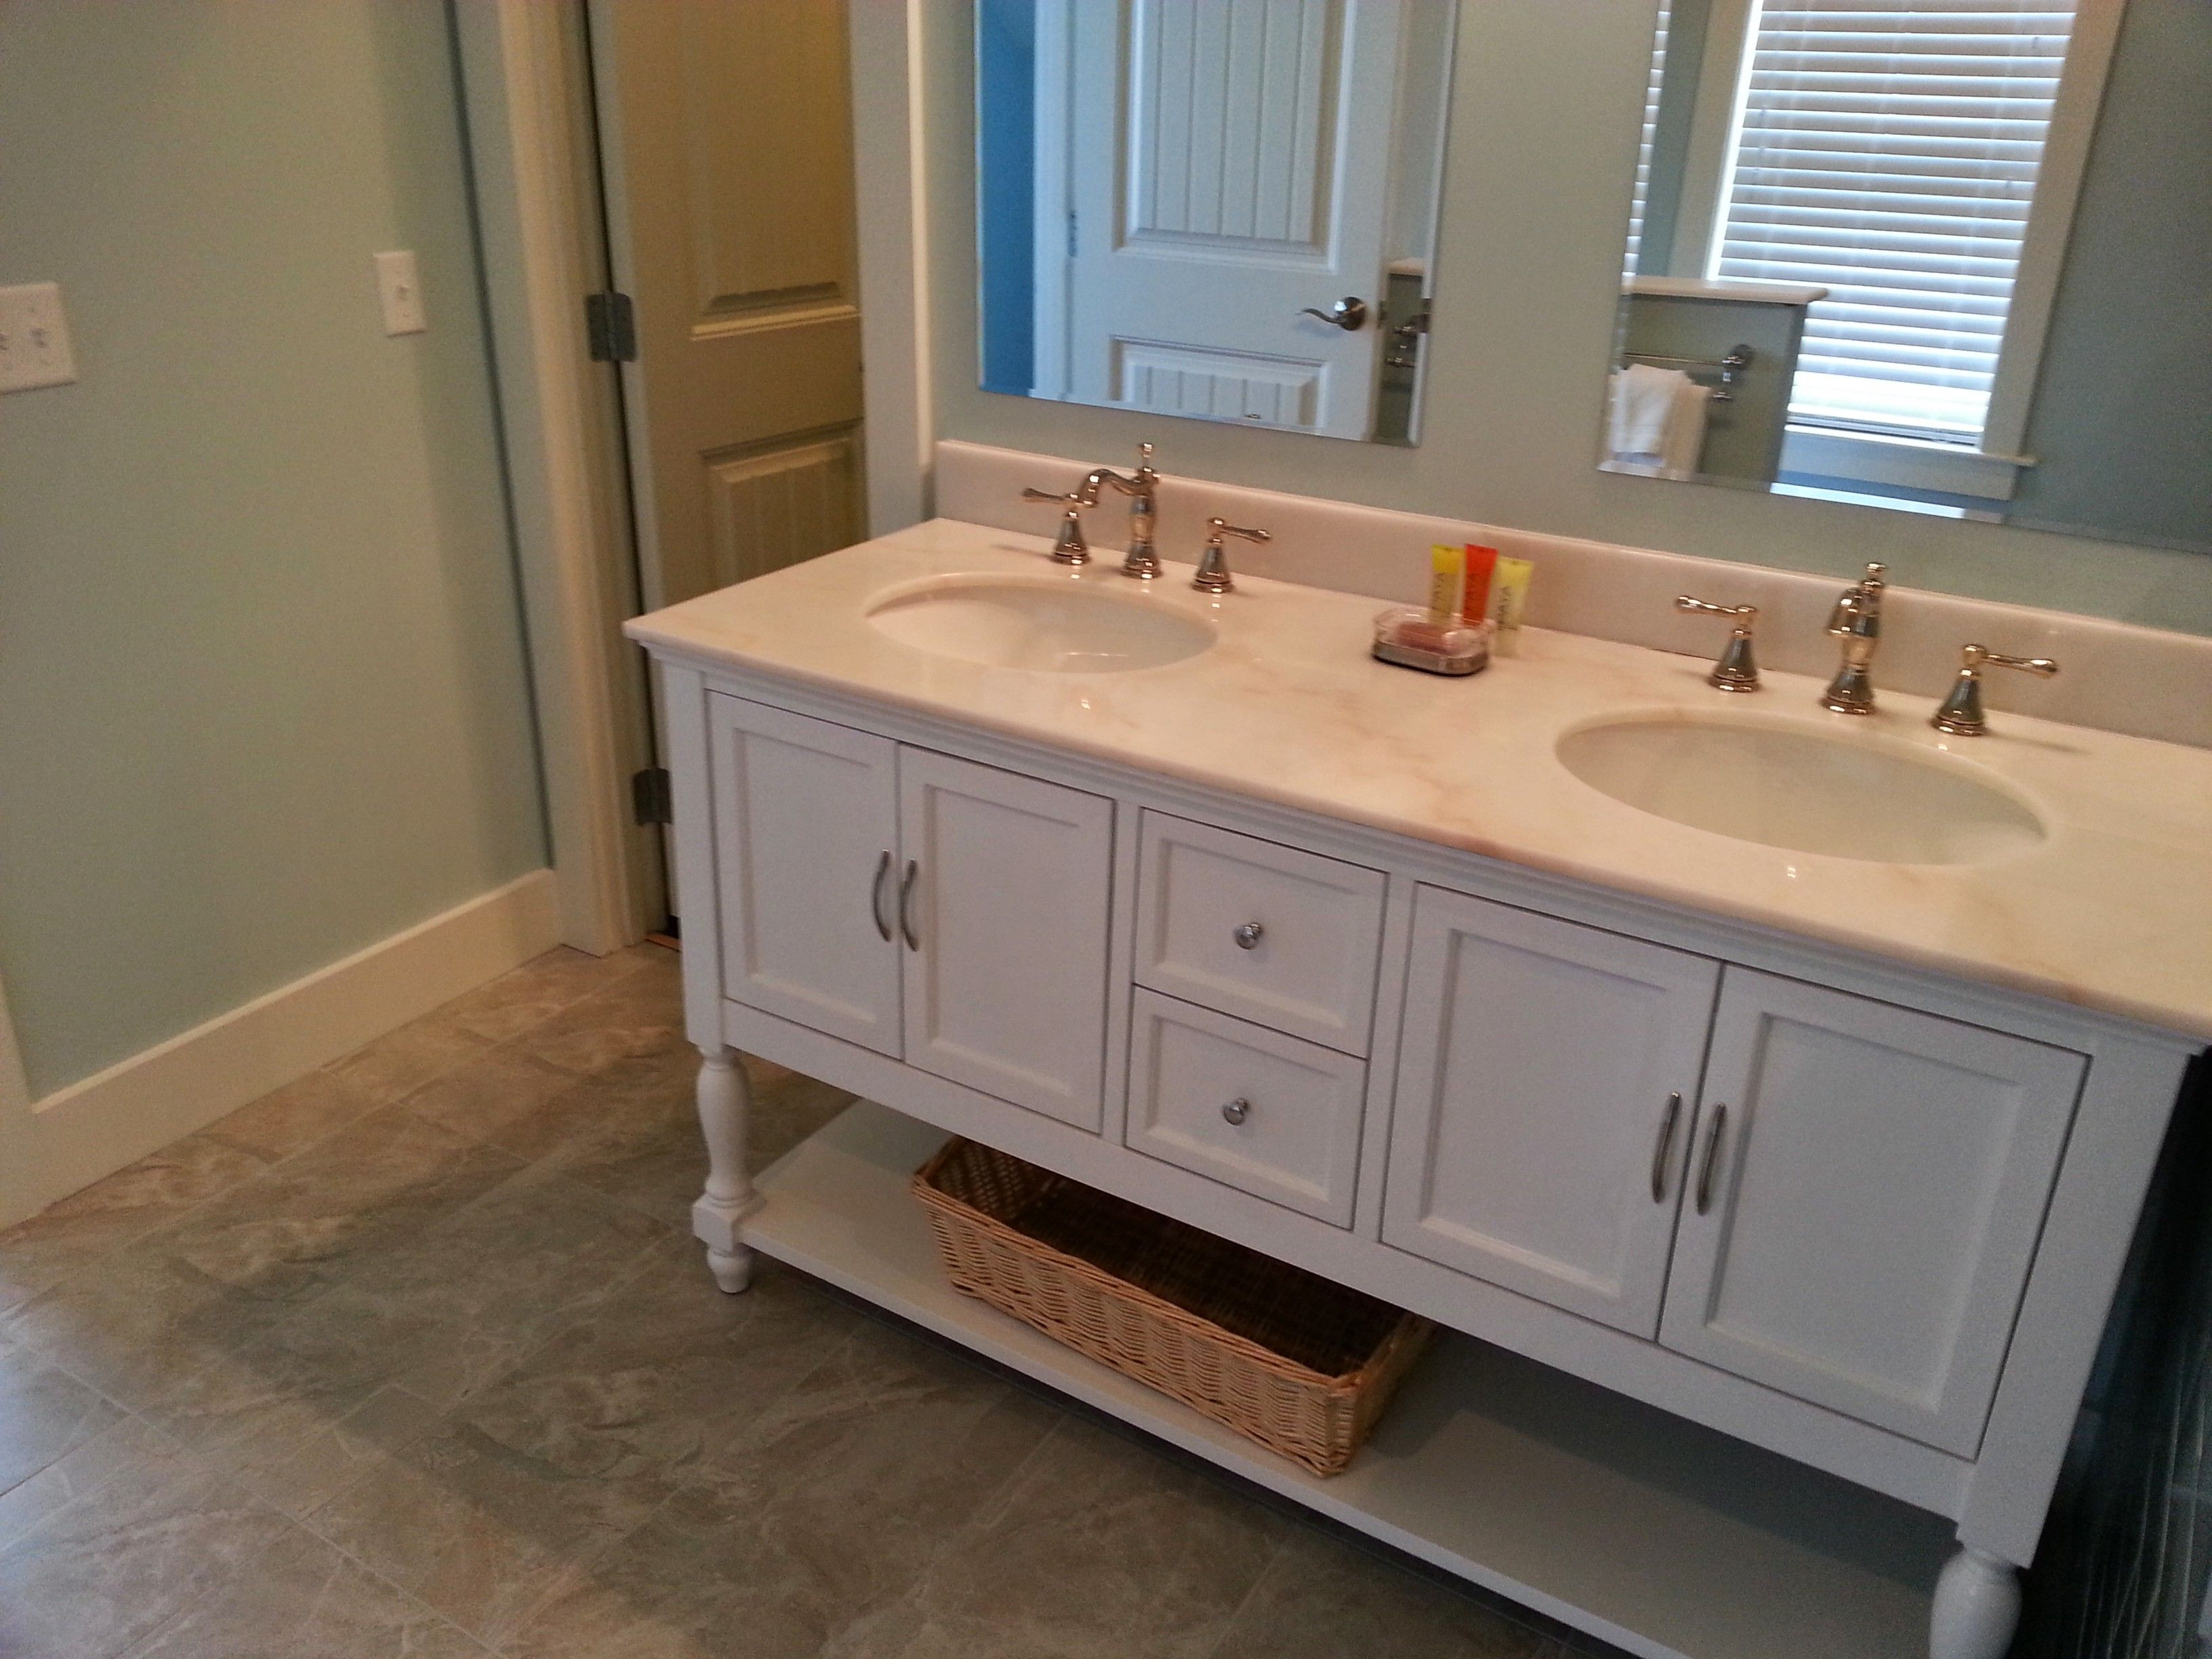 photos of remodeled bathrooms%0A GraceWorks Construction bathroom remodel